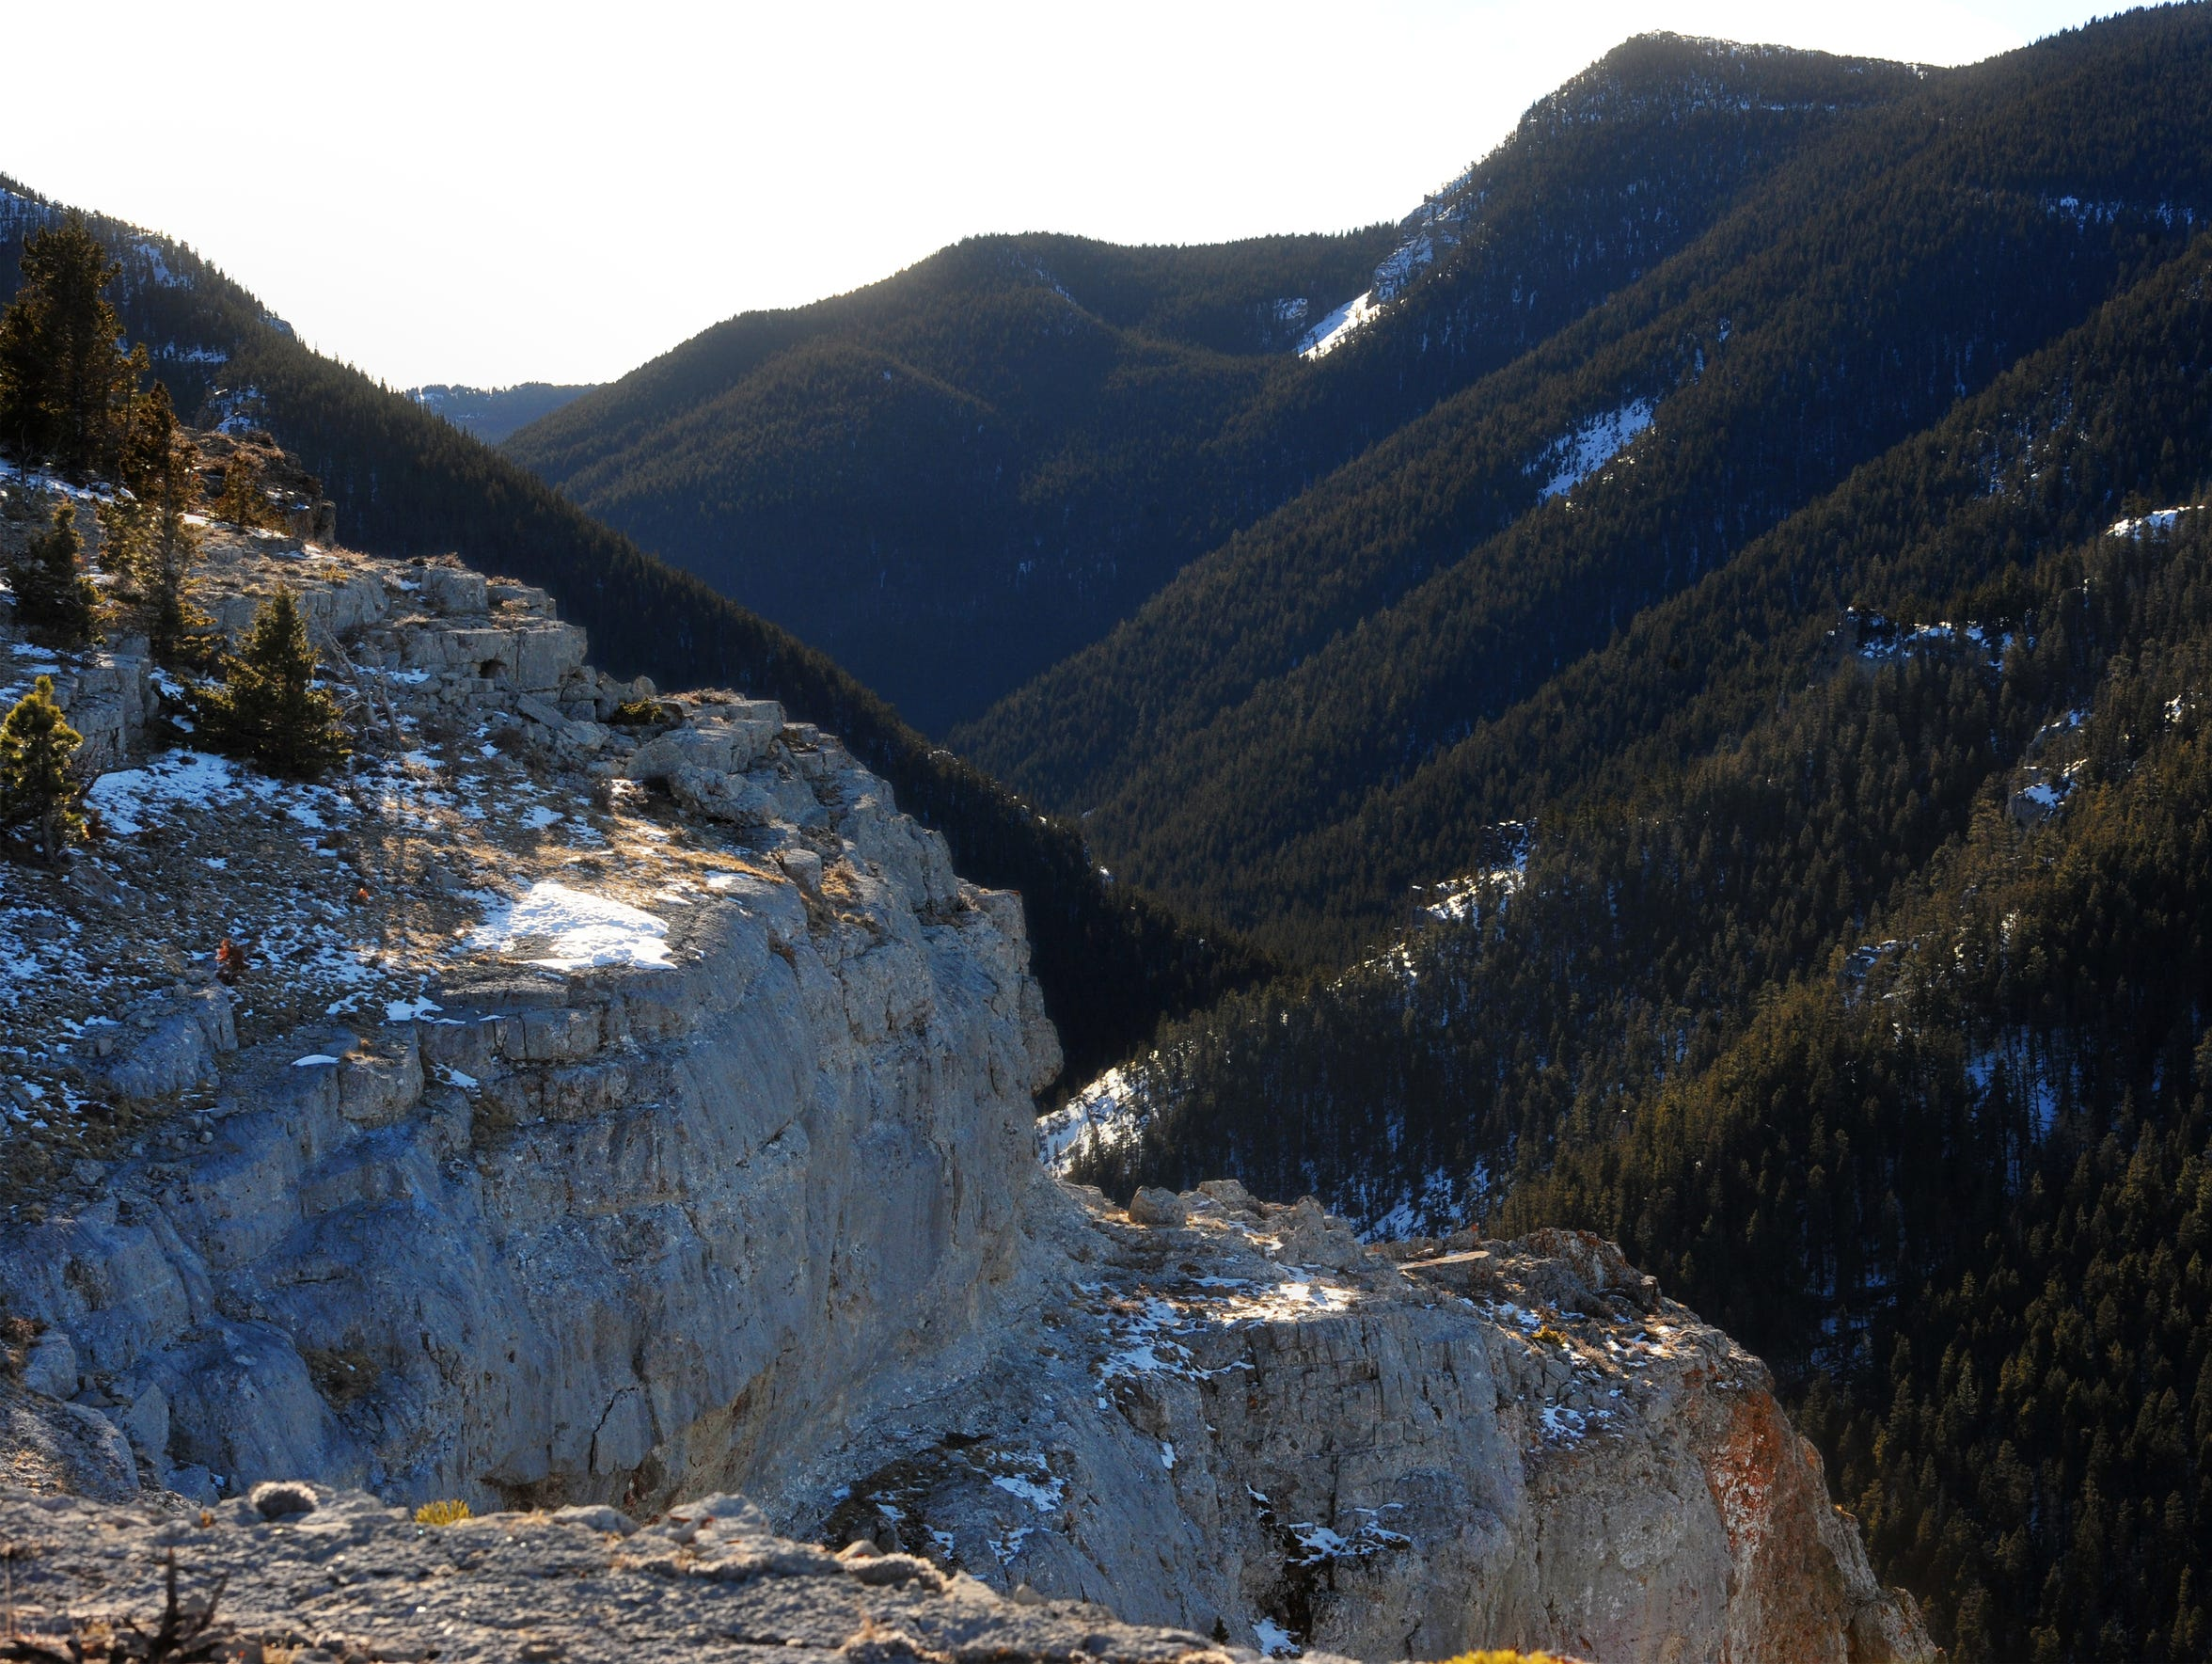 A look into Half Moon Canyon in the Big Snowy Mountains